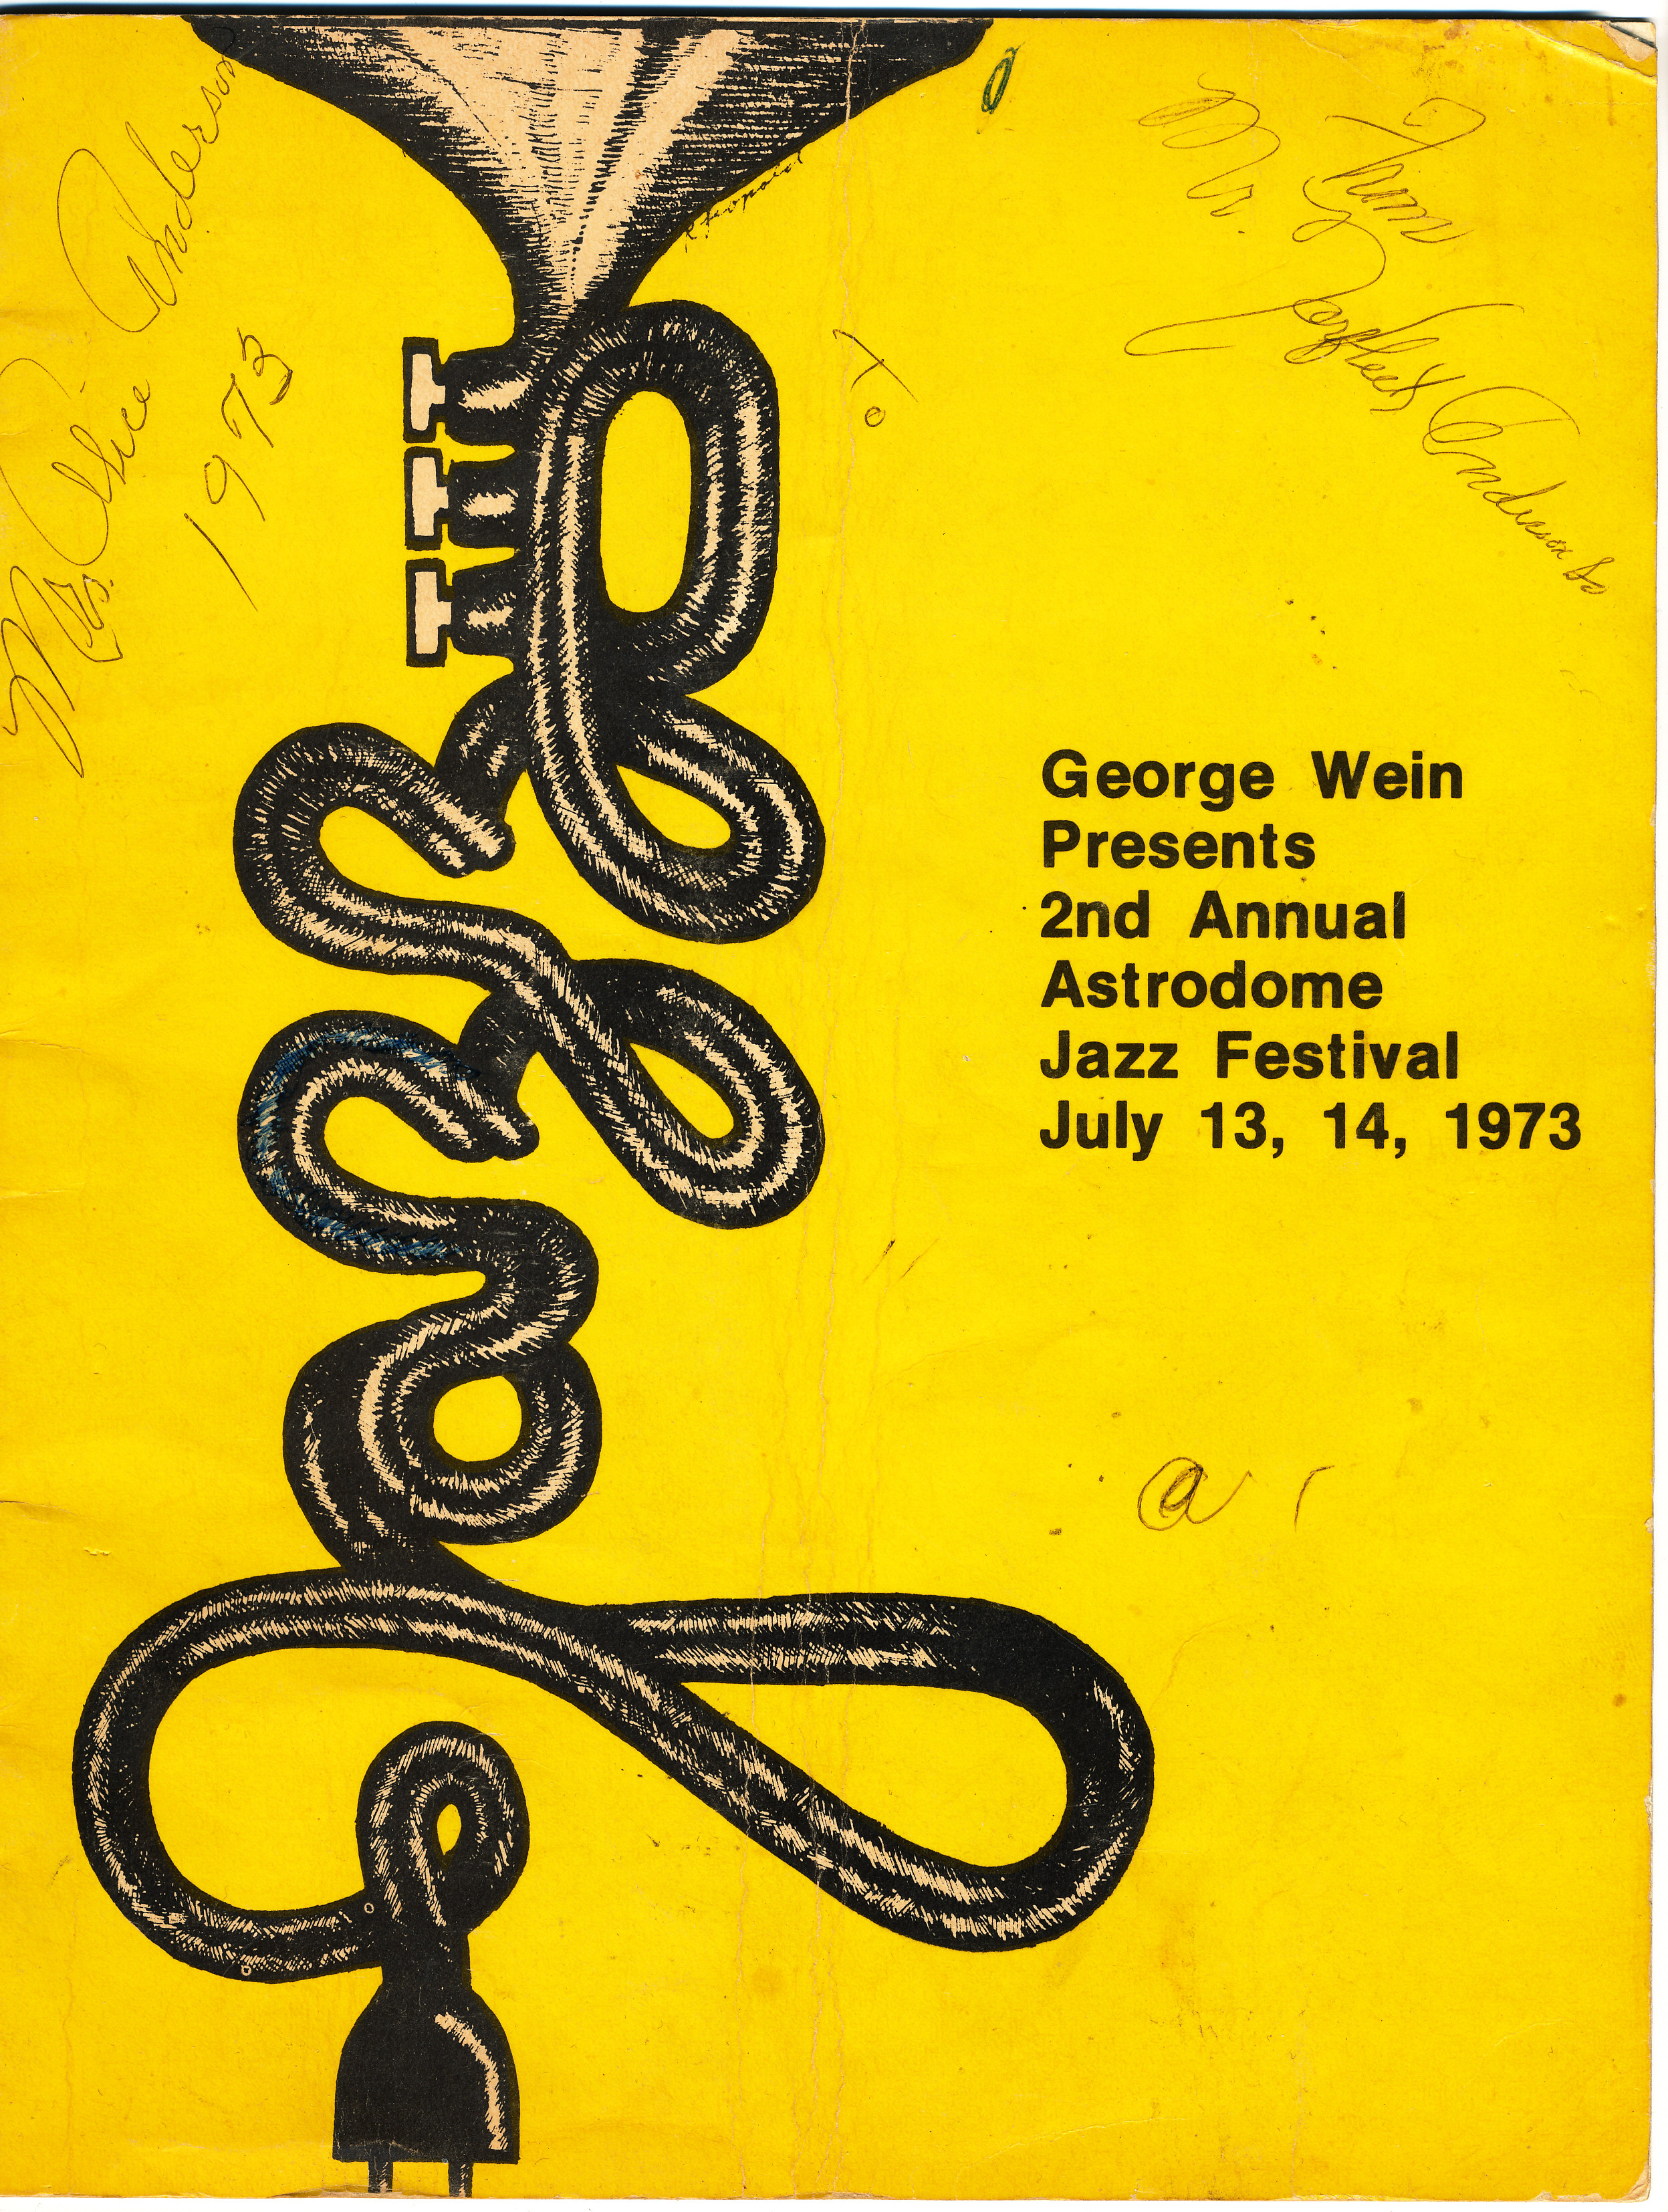 the 2nd annual astrodome jazz festival